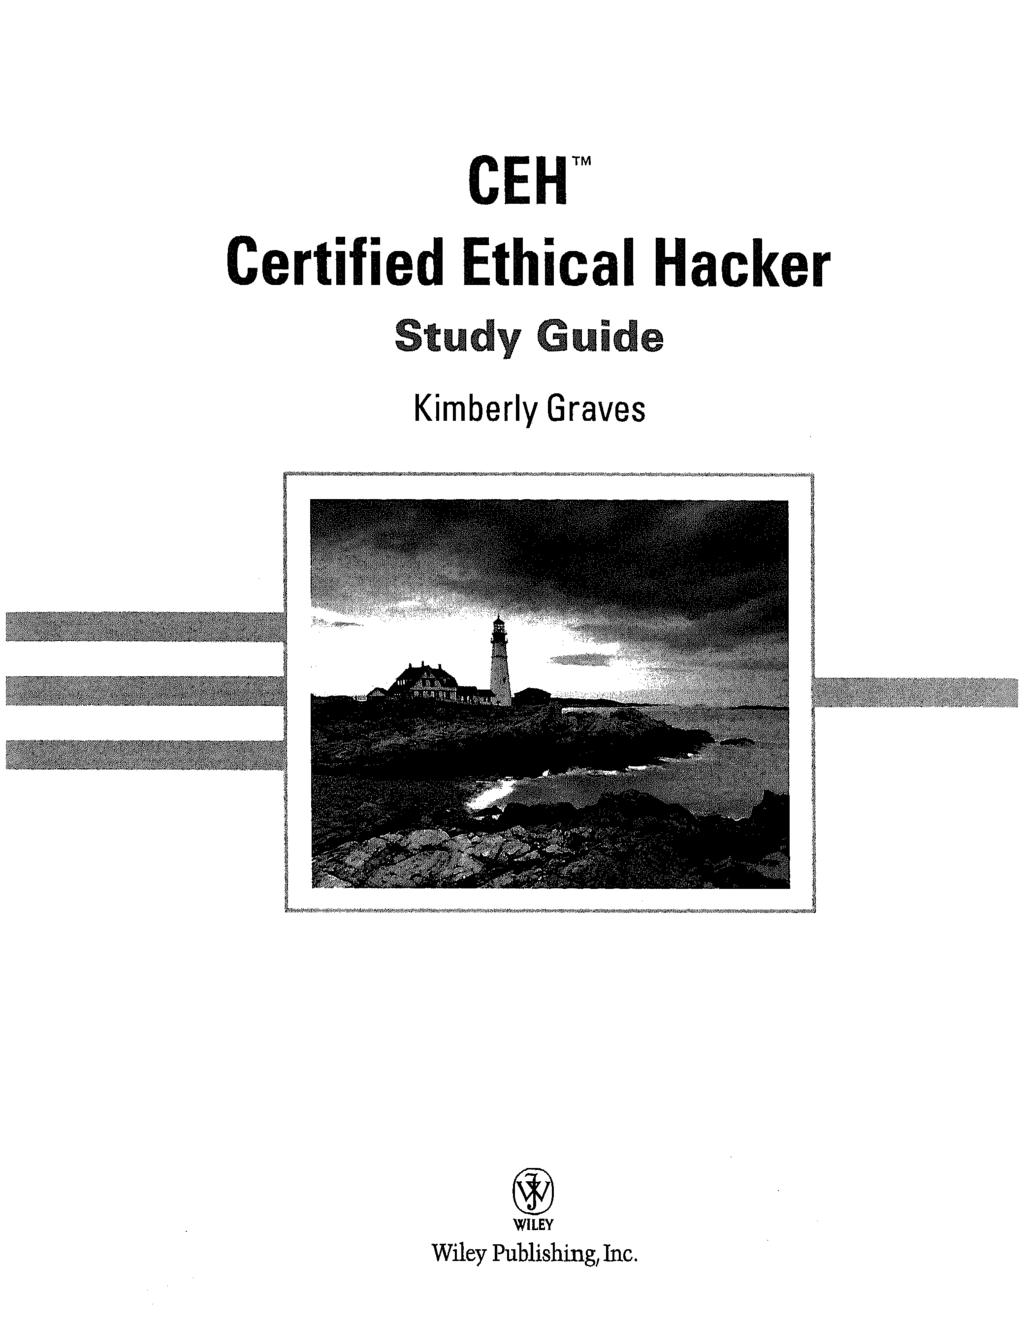 2019 Ethical hacking and countermeasures Braindumps pdf ...